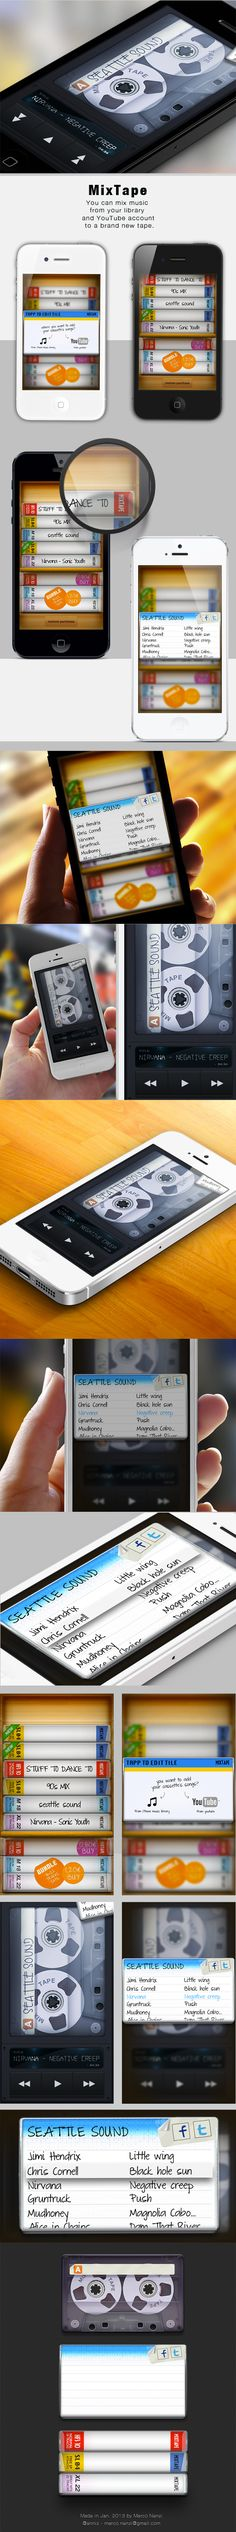 MixTape - iOS Music App - mix music from your library or YouTube account to a brand new mix tape playlist | Designer: Marco Nenzi